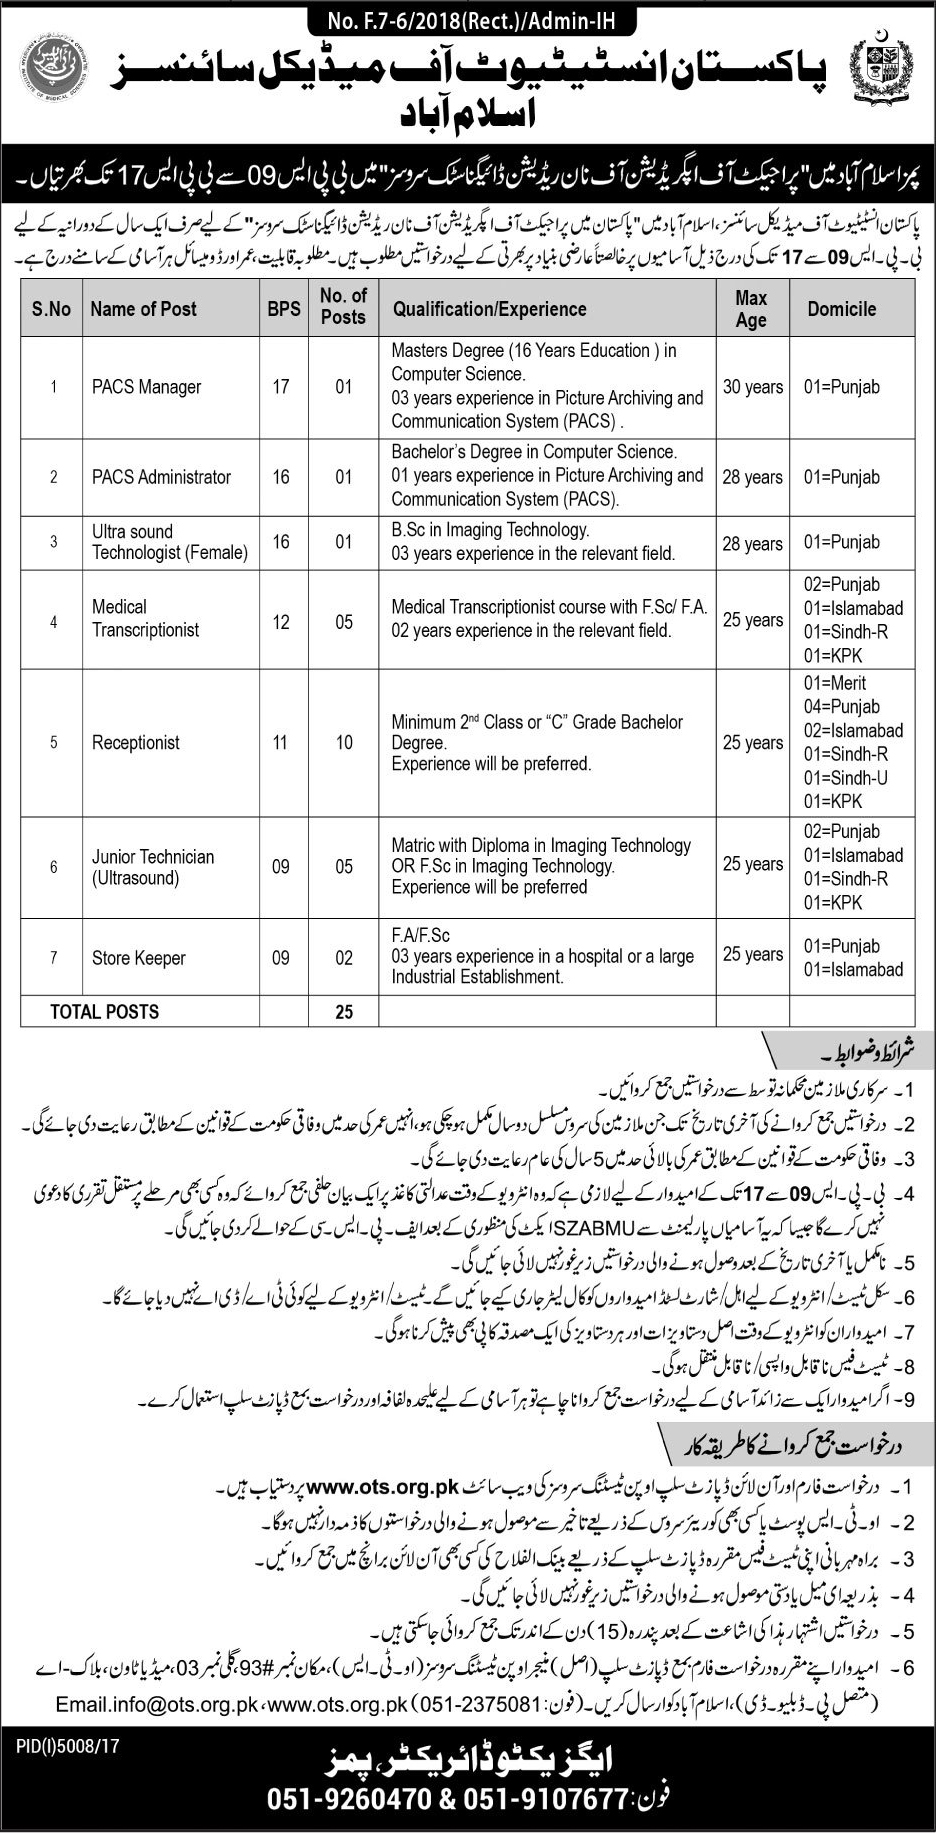 Pakistan Institute of Medical Sciences 25 Jobs Daily Jang Newspaper 18 March 2018